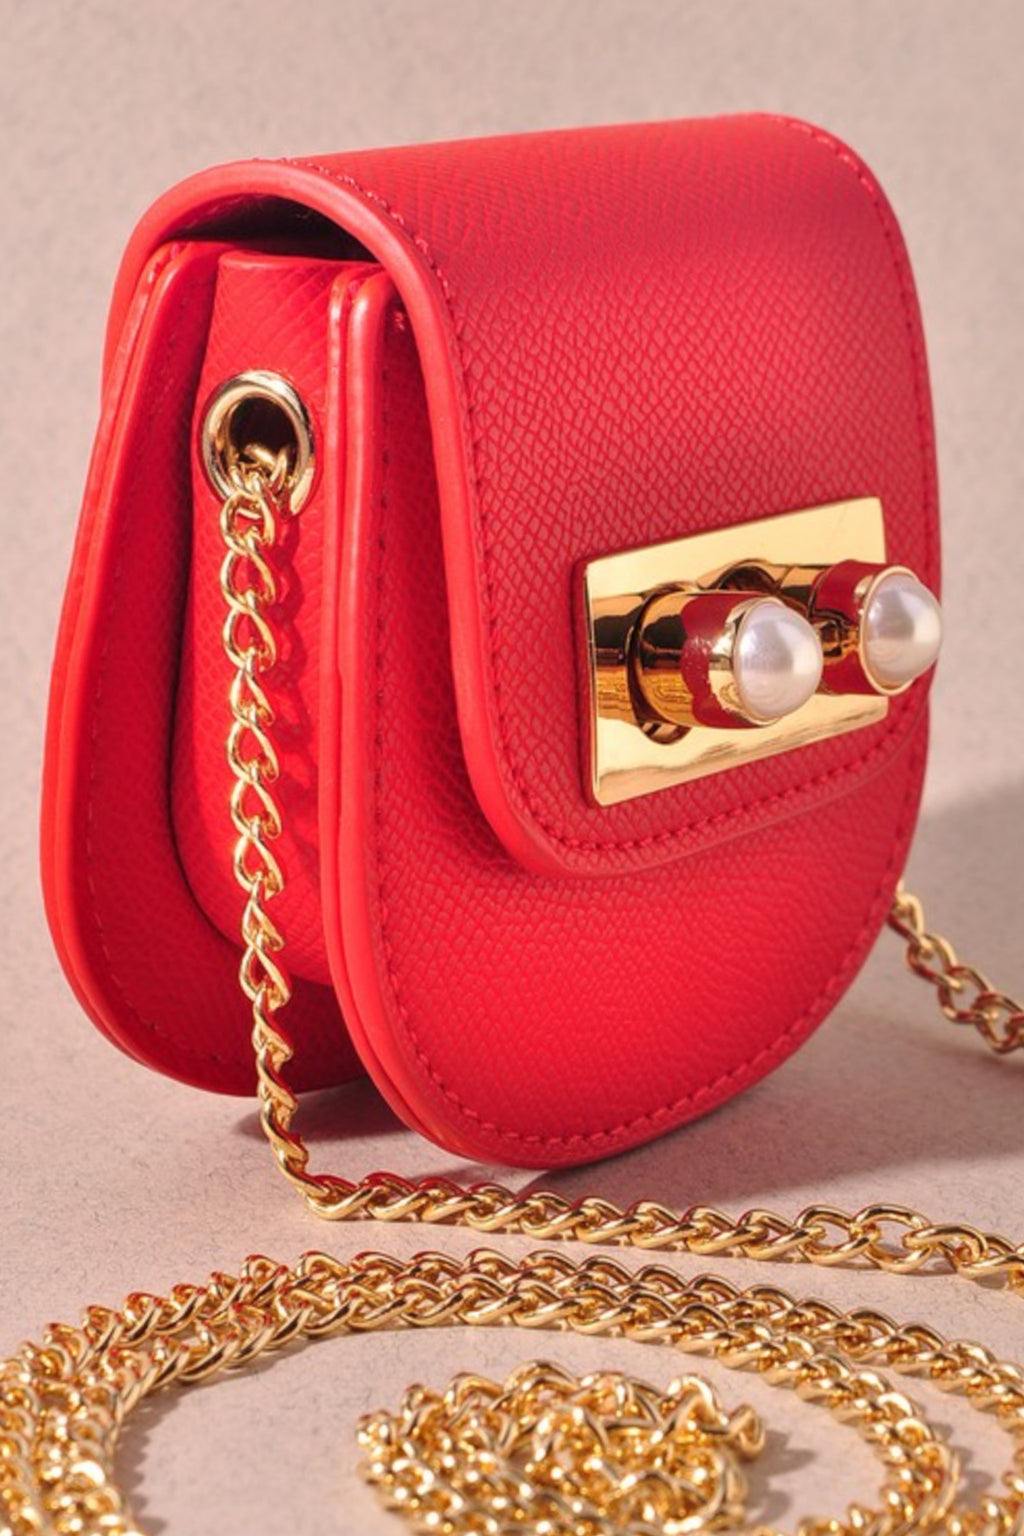 Leather & Pearl Mini Bag - Red